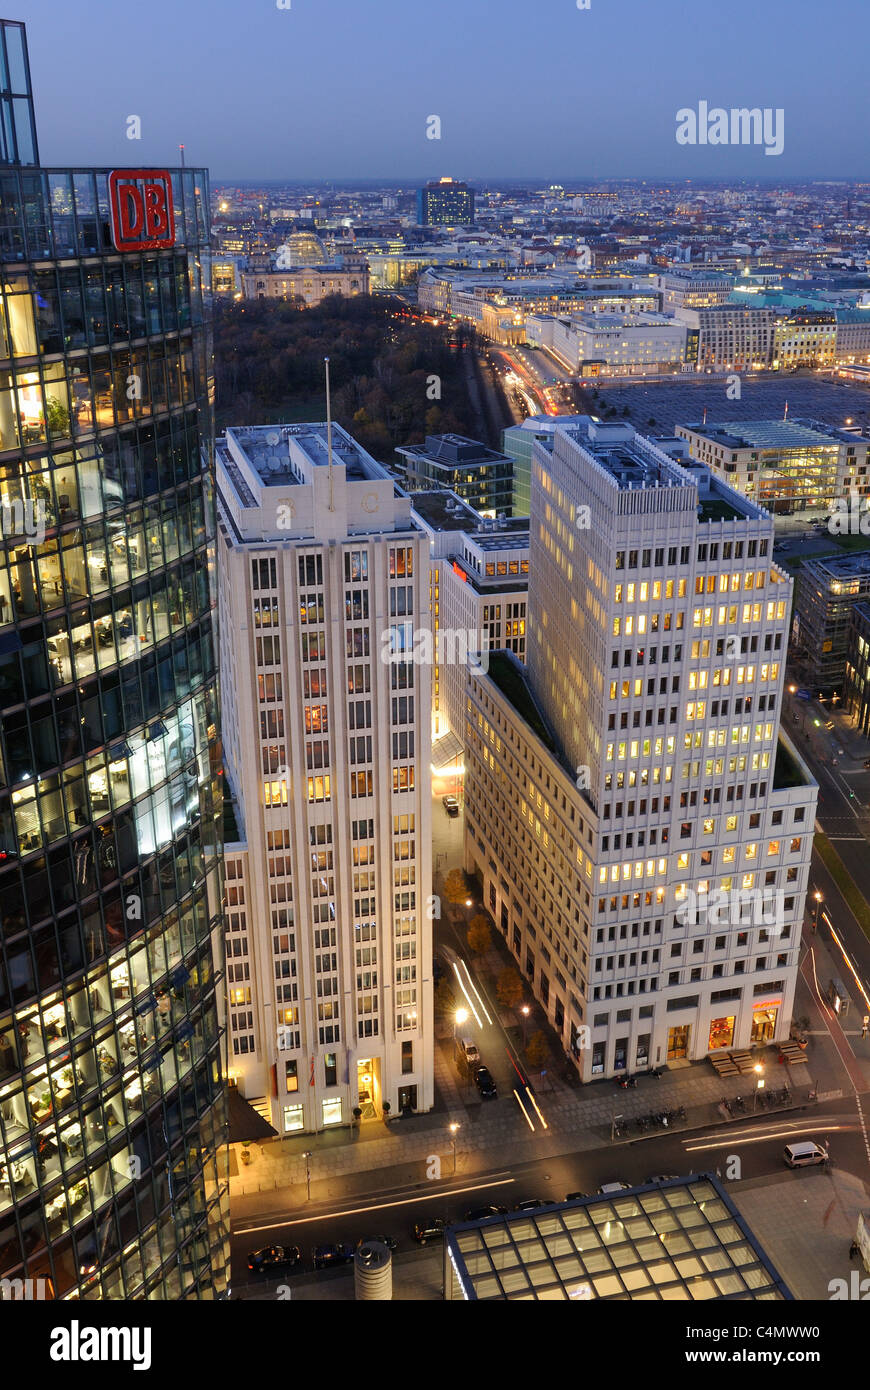 Potsdamer Platz square at dusk from above, with the Ritz Carlton Hotel, Beisheim Center DB Tower, Sony Center, Berlin, - Stock Image